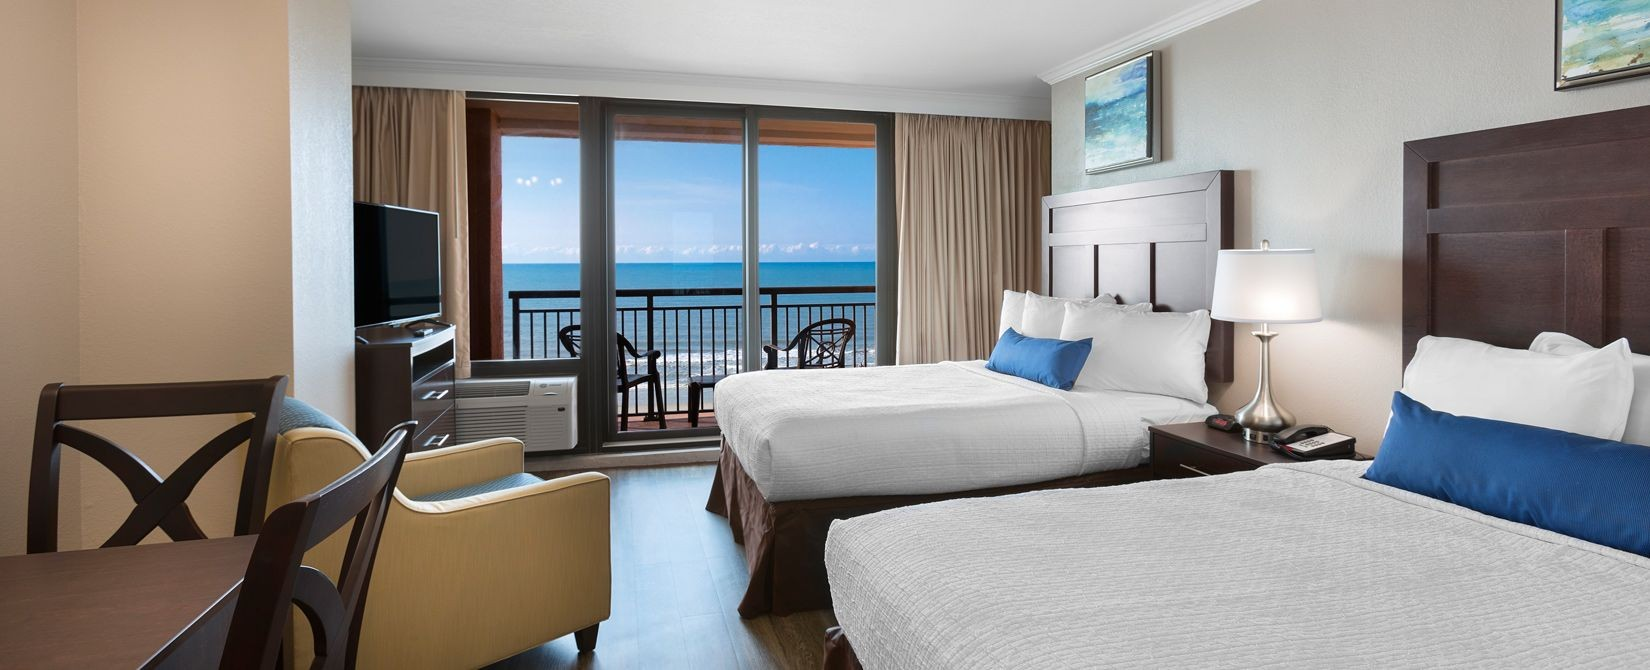 Caravelle Resort Renovated Room